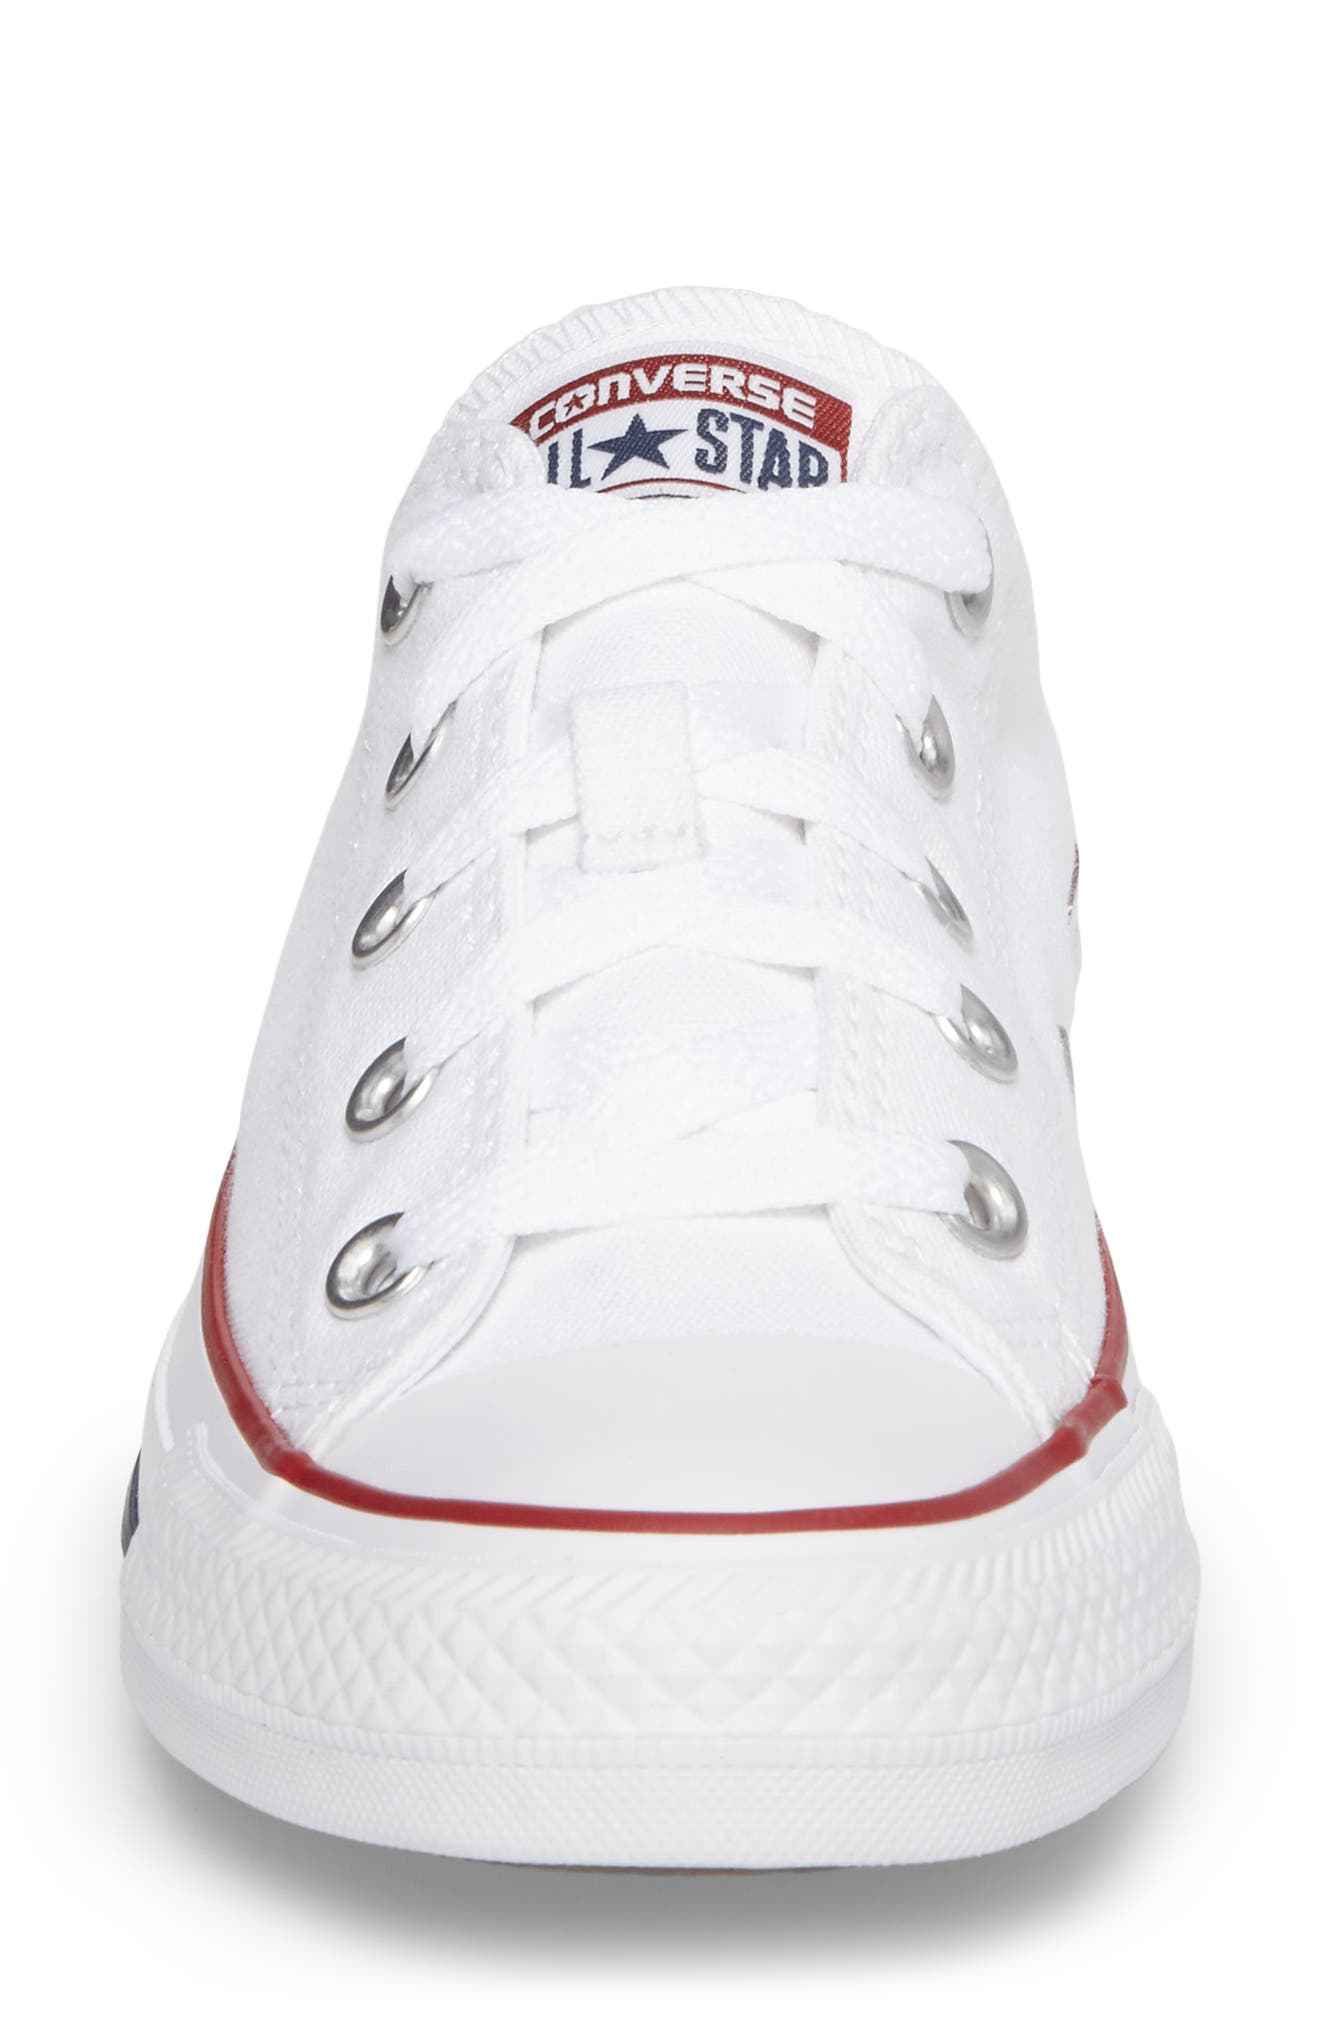 CONVERSE, Chuck Taylor<sup>®</sup> Low Top Sneaker, Alternate thumbnail 5, color, 100